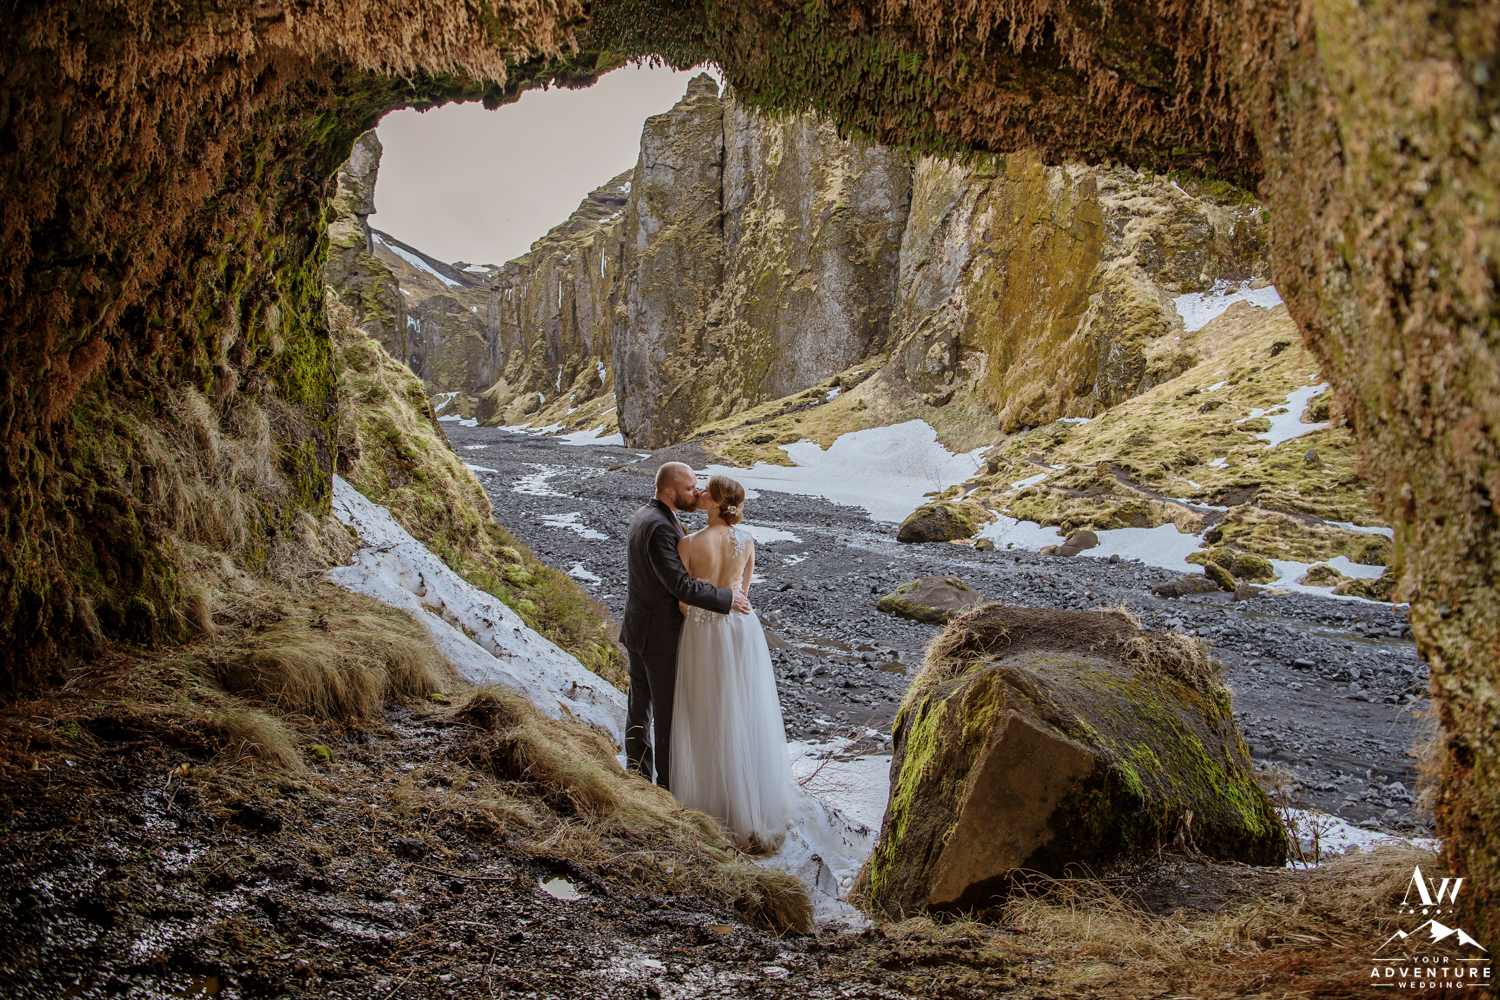 Couple inside of Iceland Cave during wedding